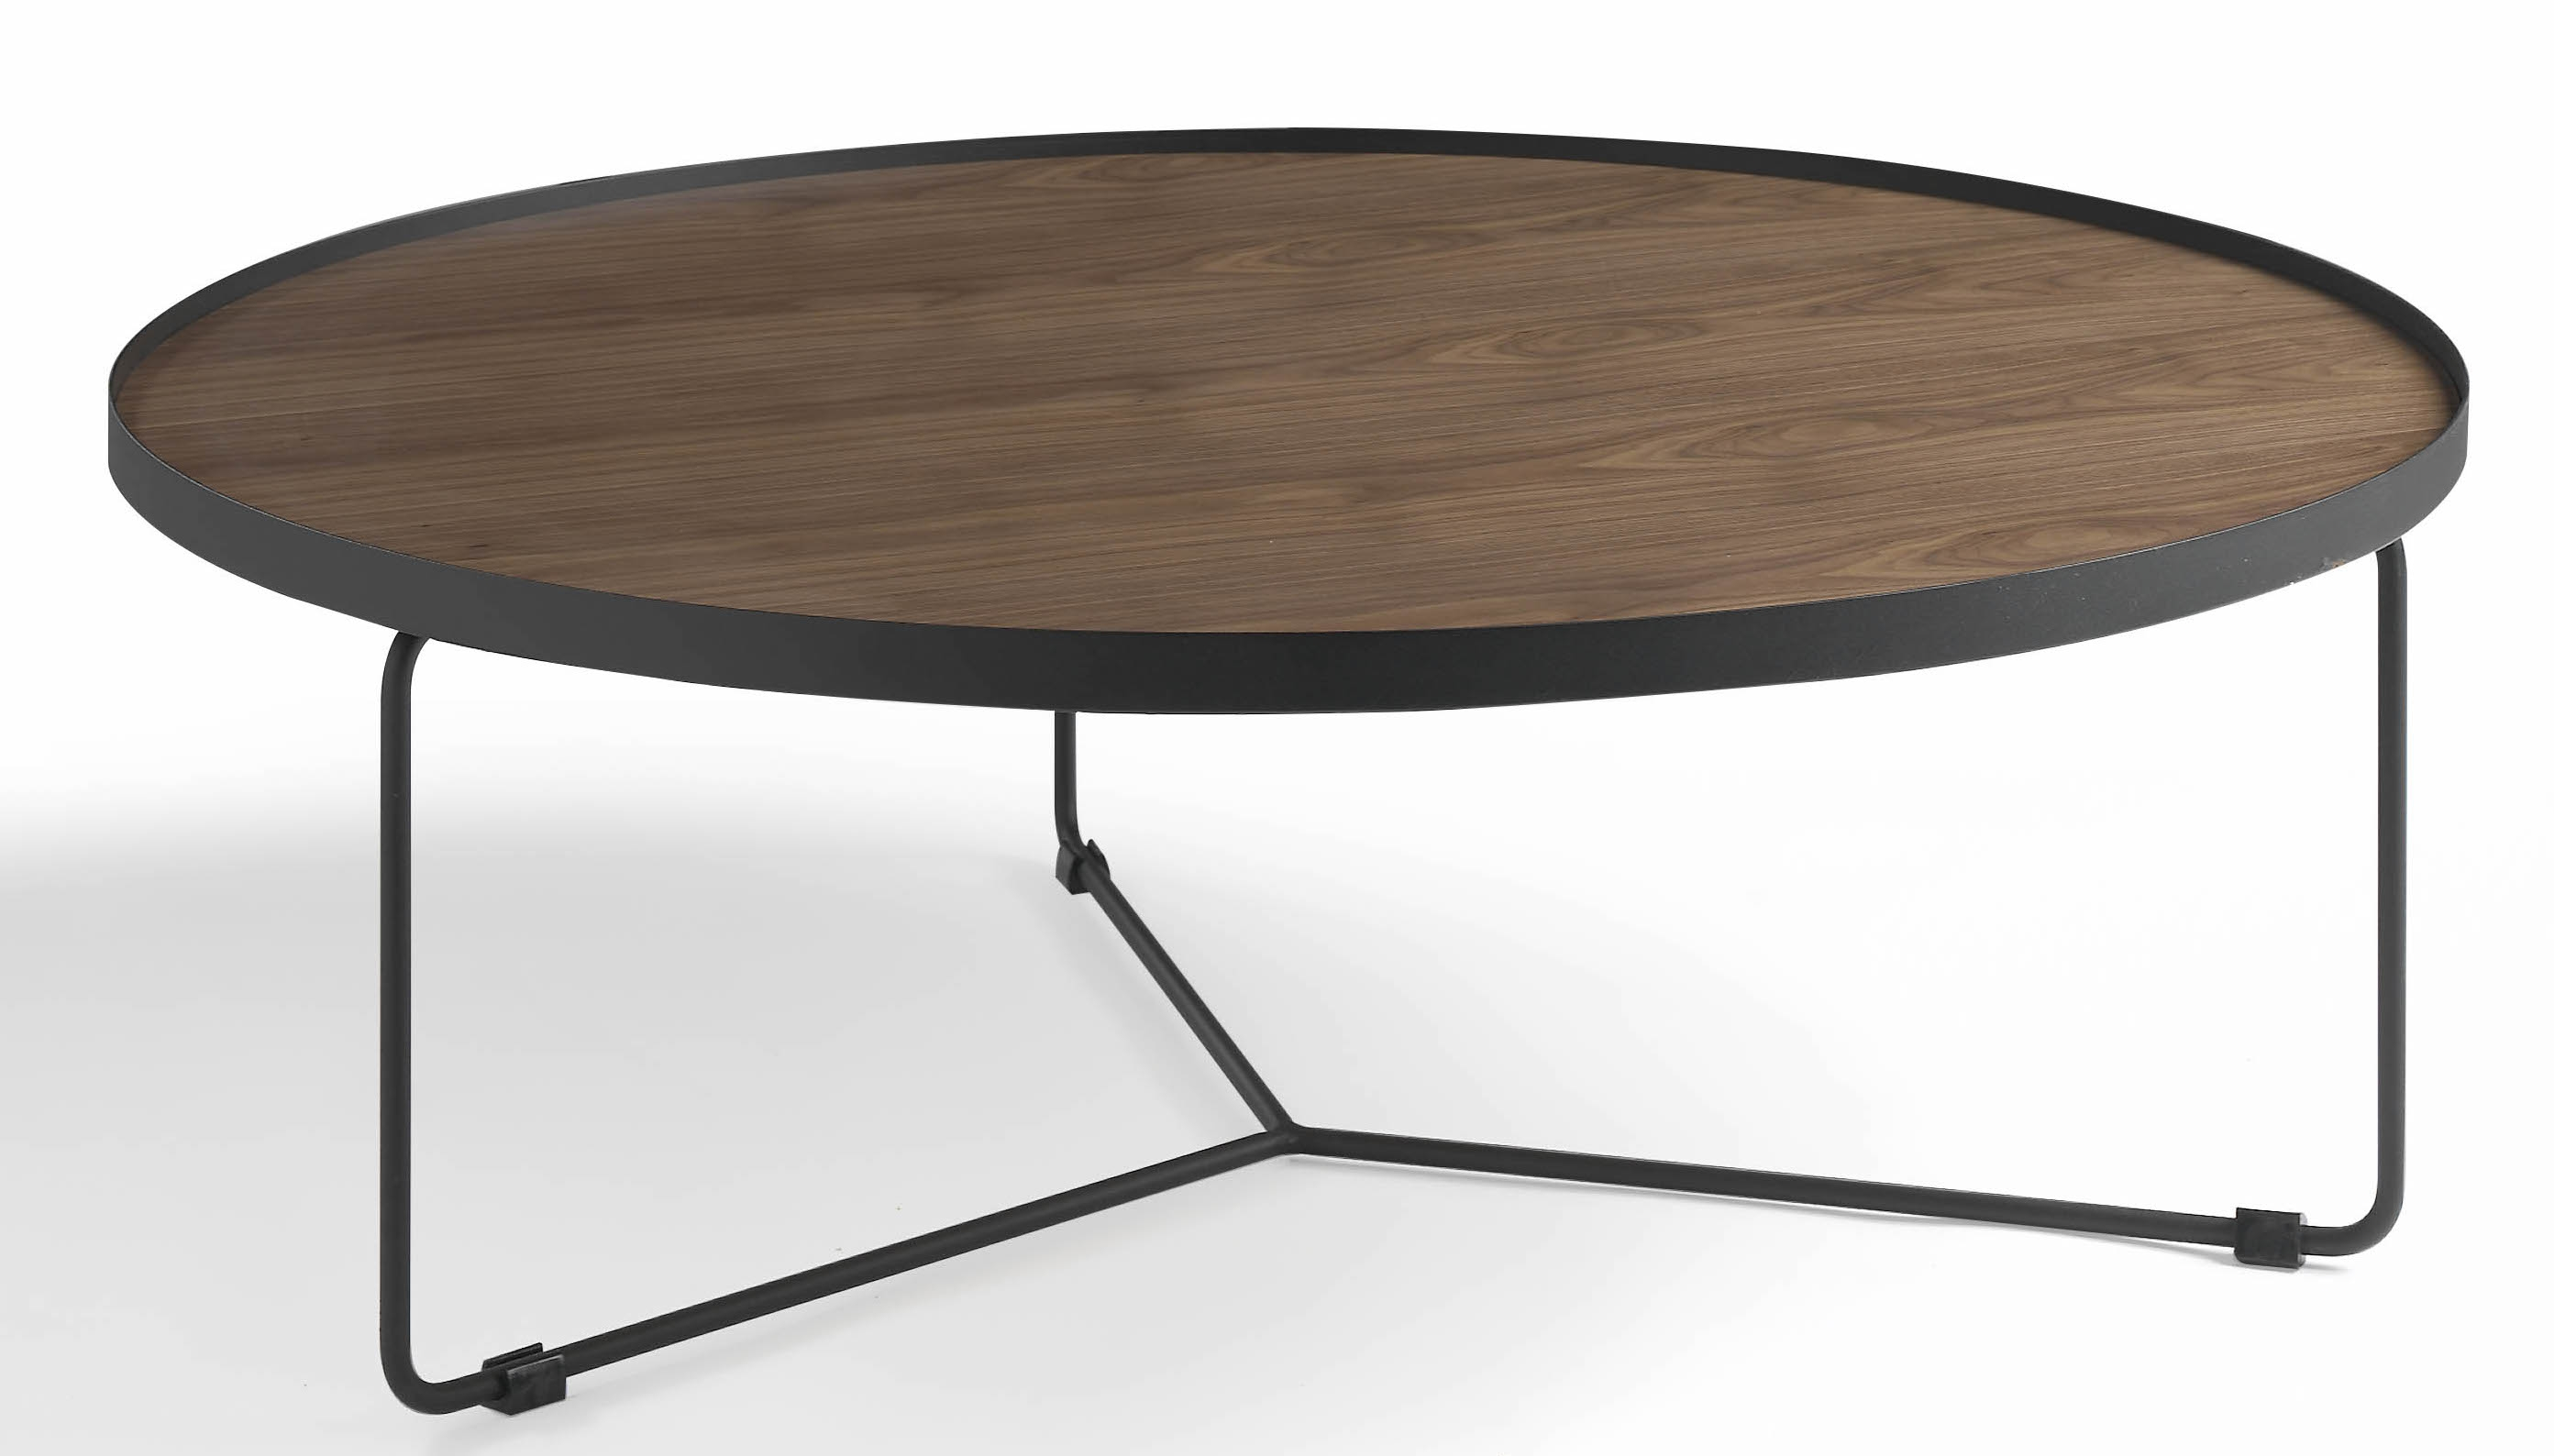 Table basse ronde bois noyer et m tal noir noka - Table basse metal ronde ...